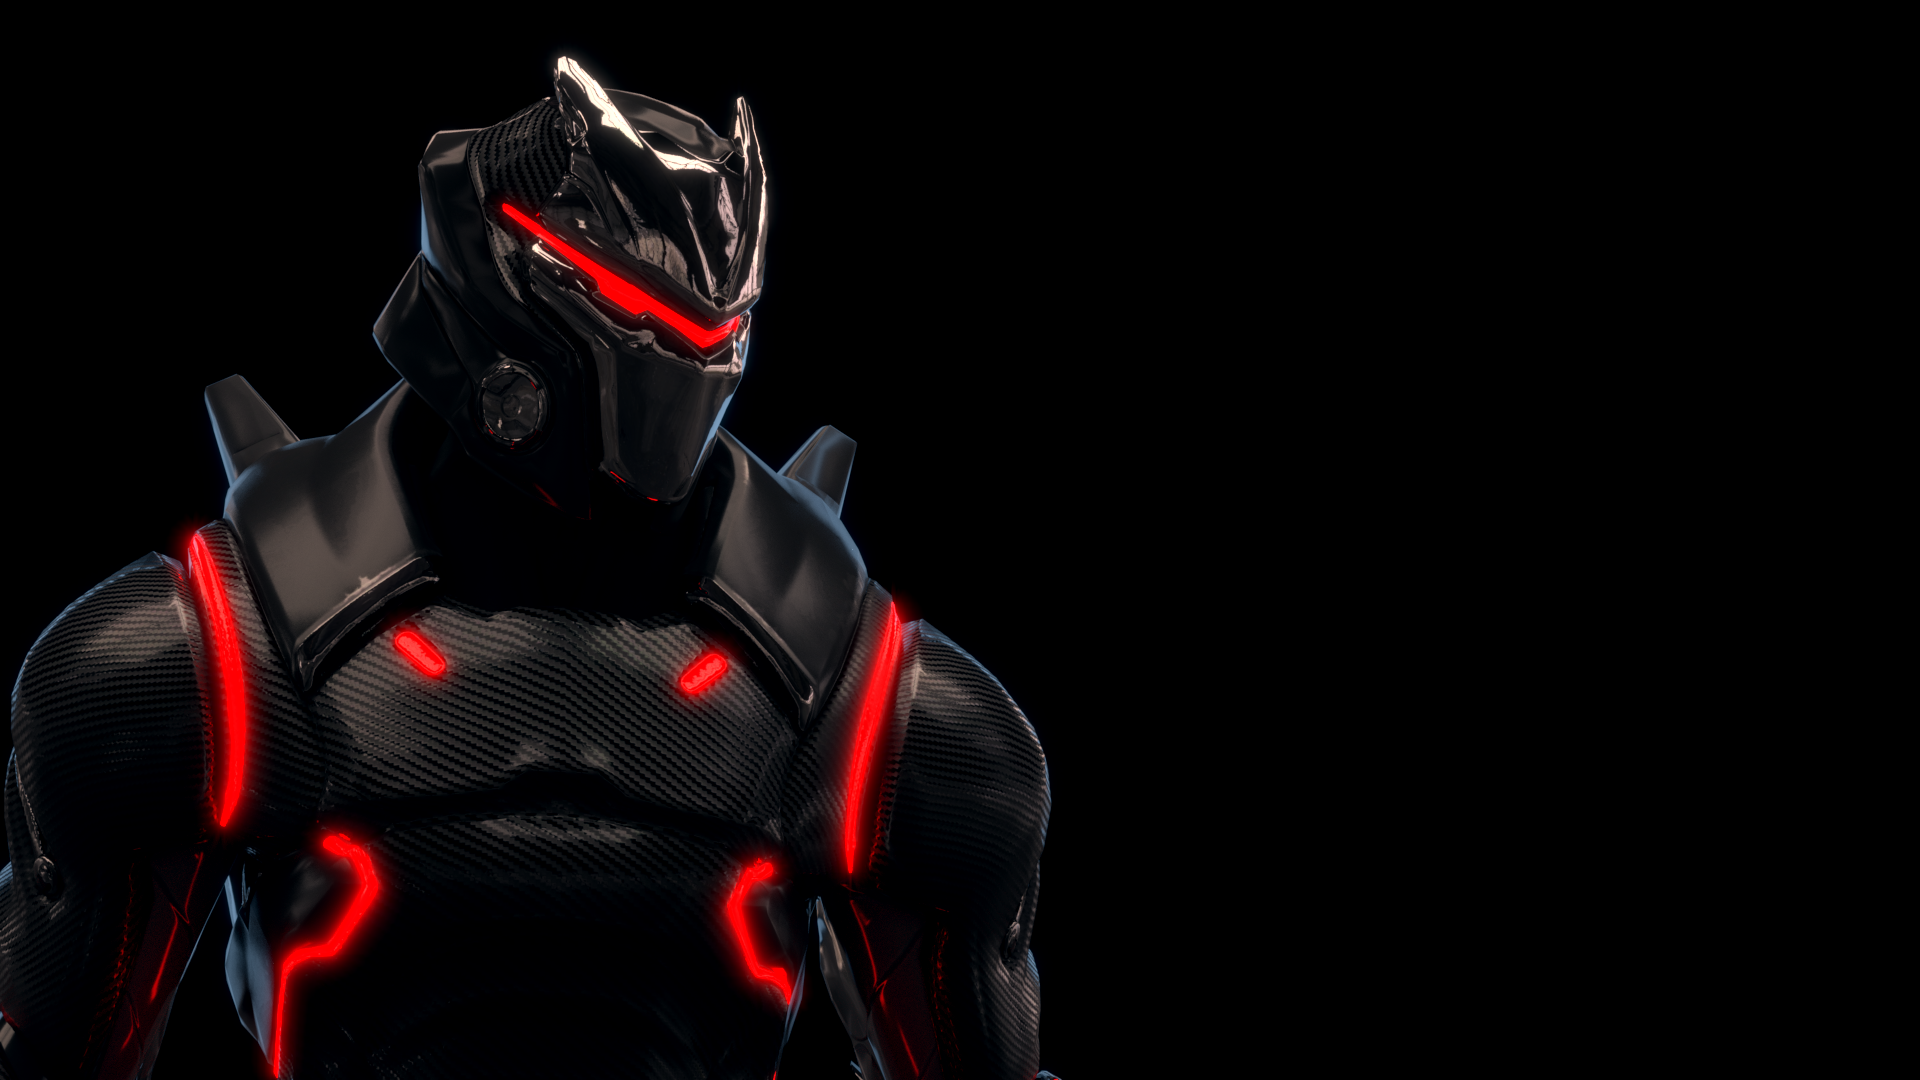 Made a wallpaper with the Omega FortNiteBR 1920x1080